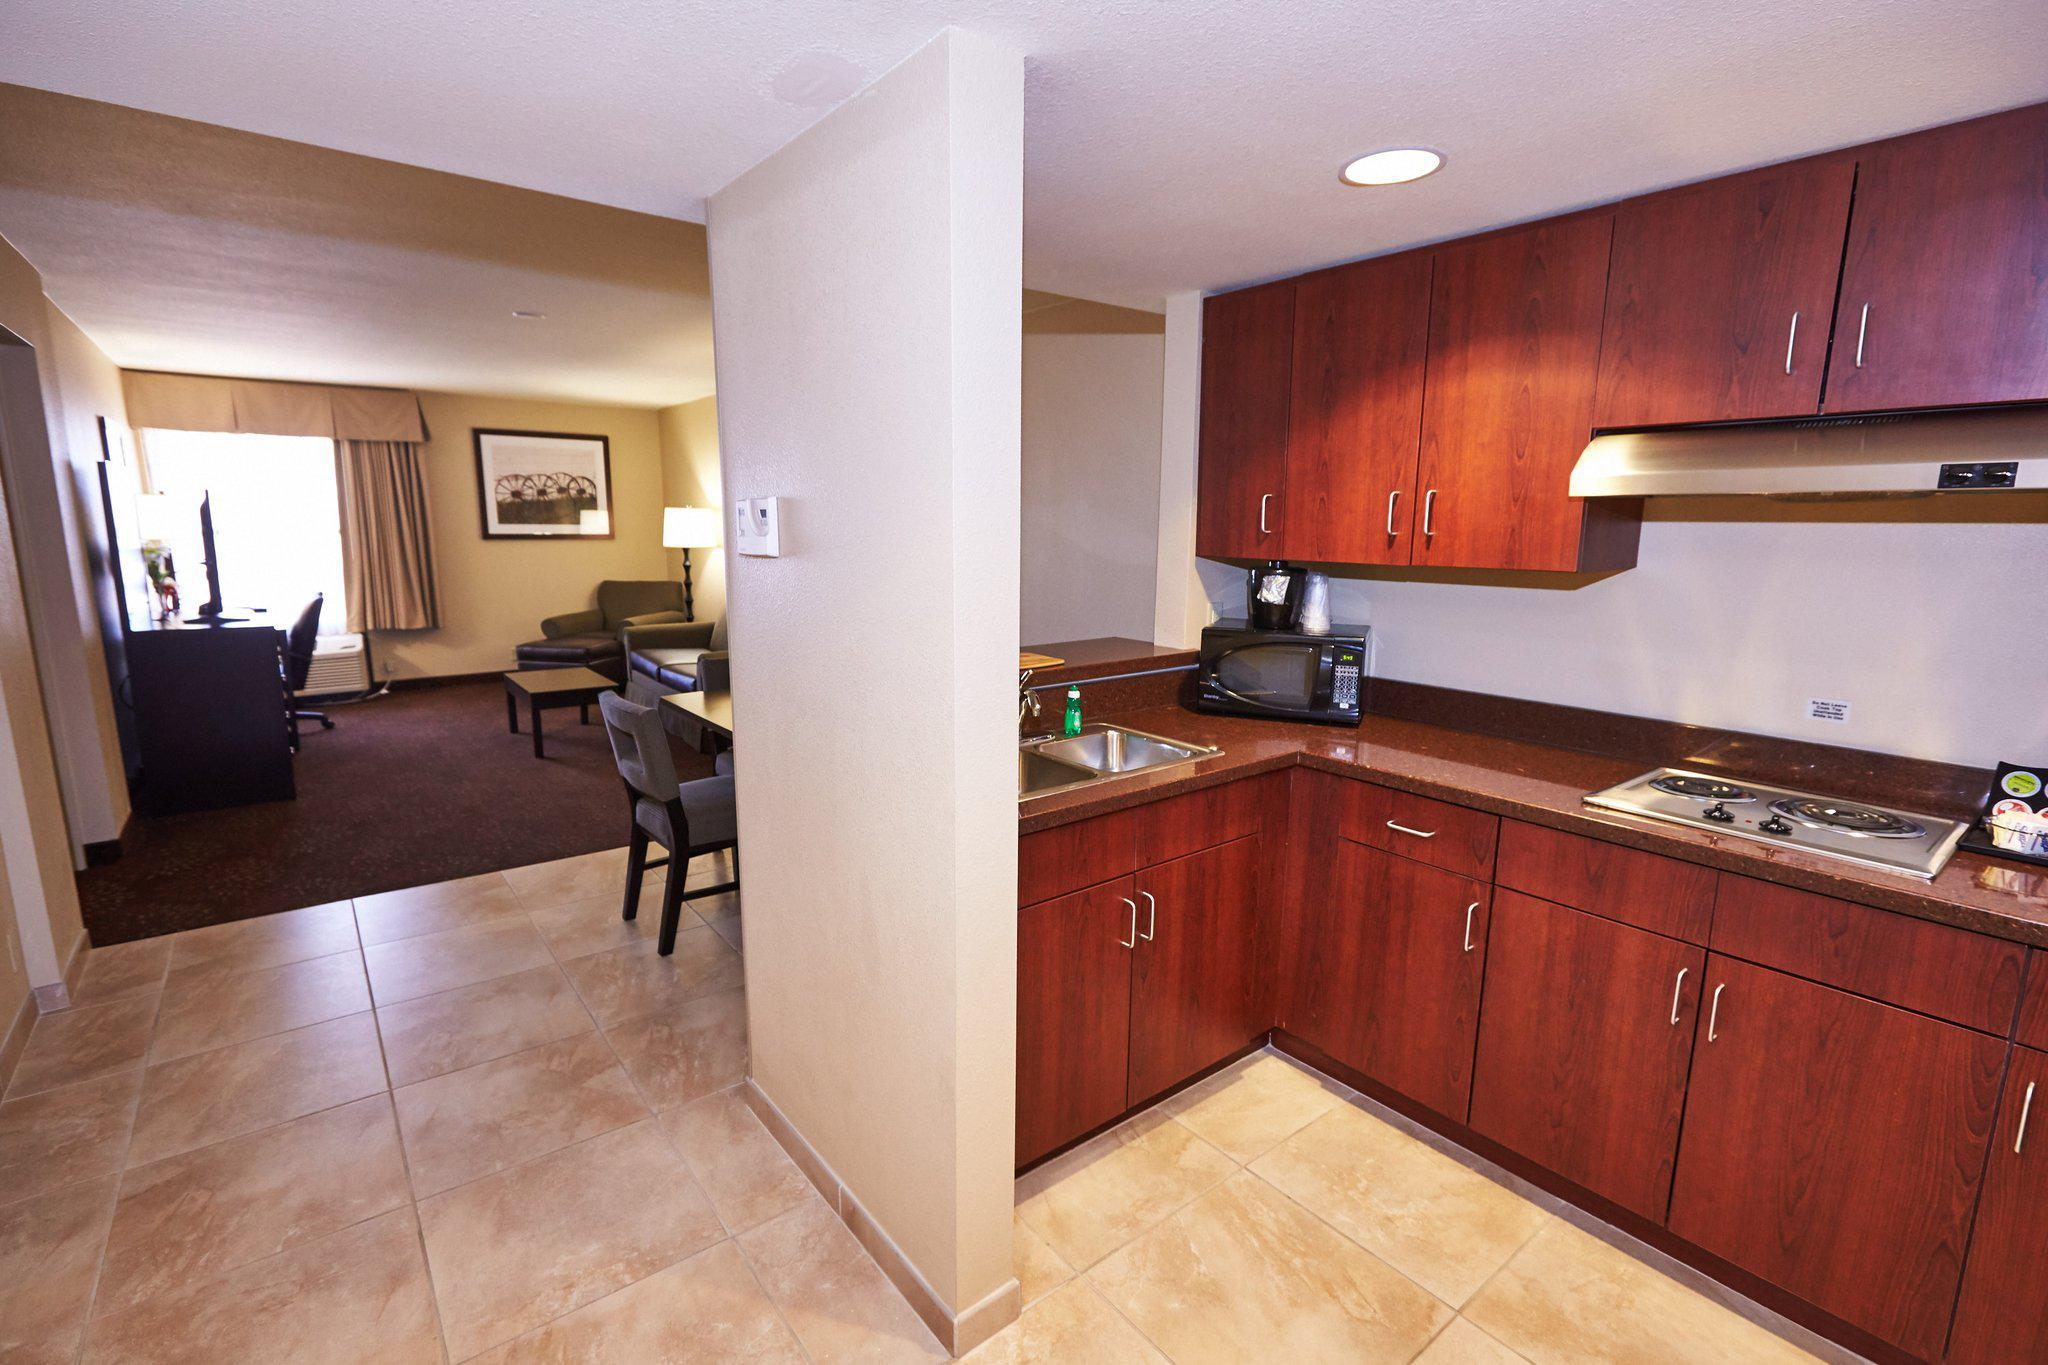 Holiday Inn Express Guesthouse Coupons near me in Fort Bliss, TX 79906 | 8coupons